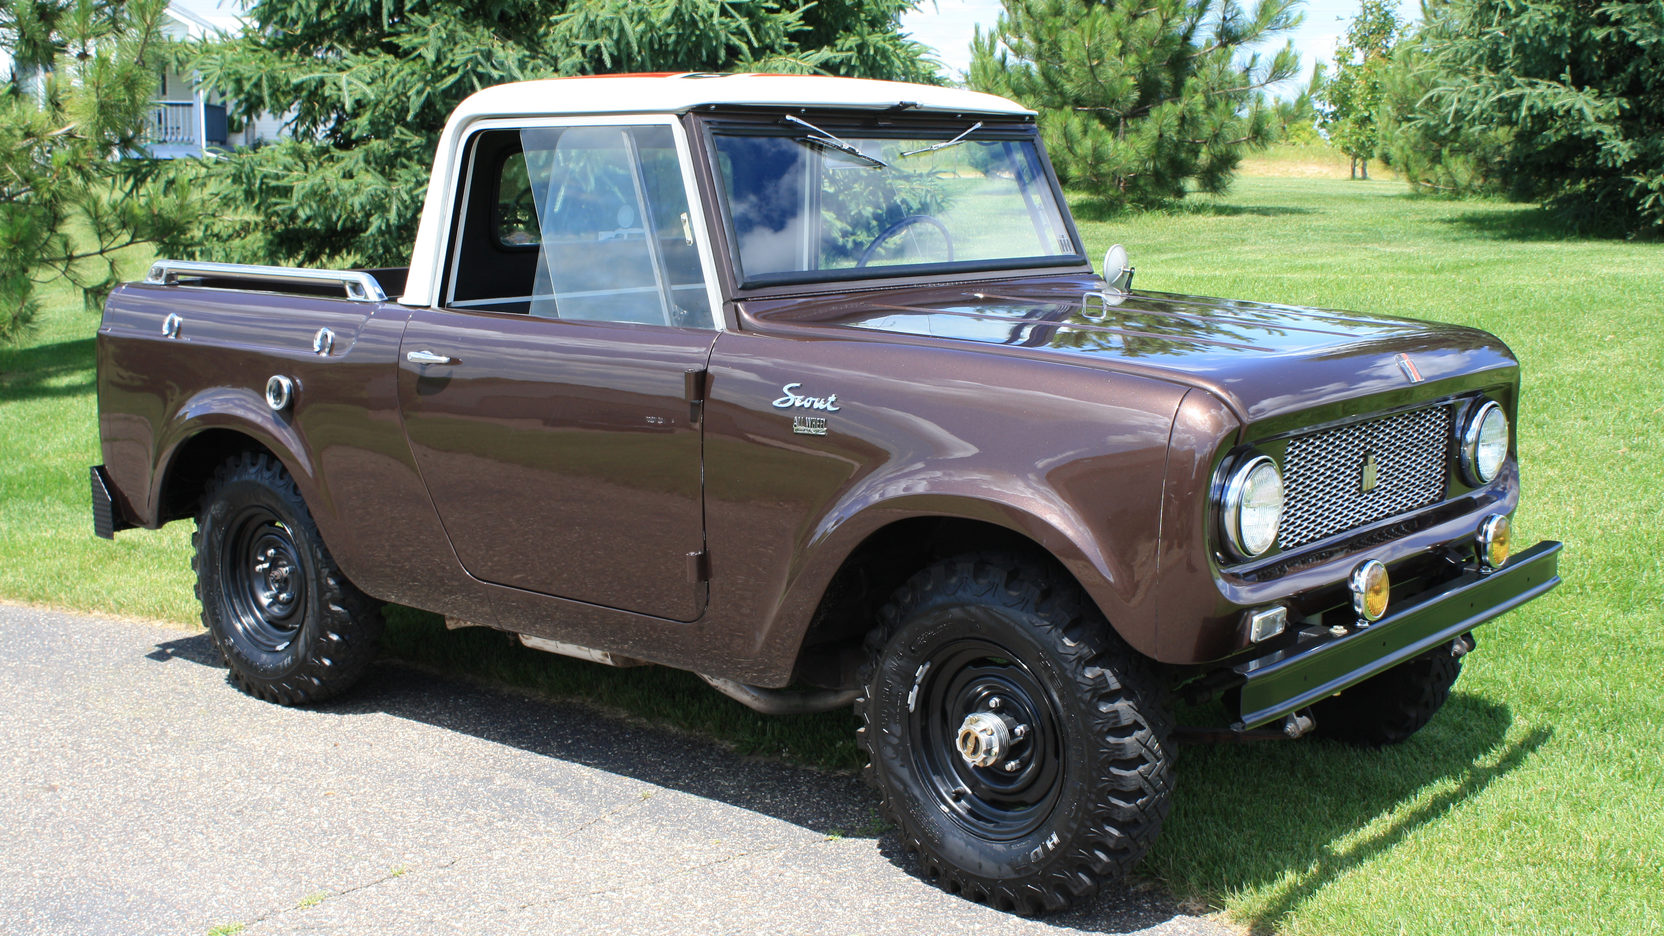 1962 International Scout 4x4 pickup